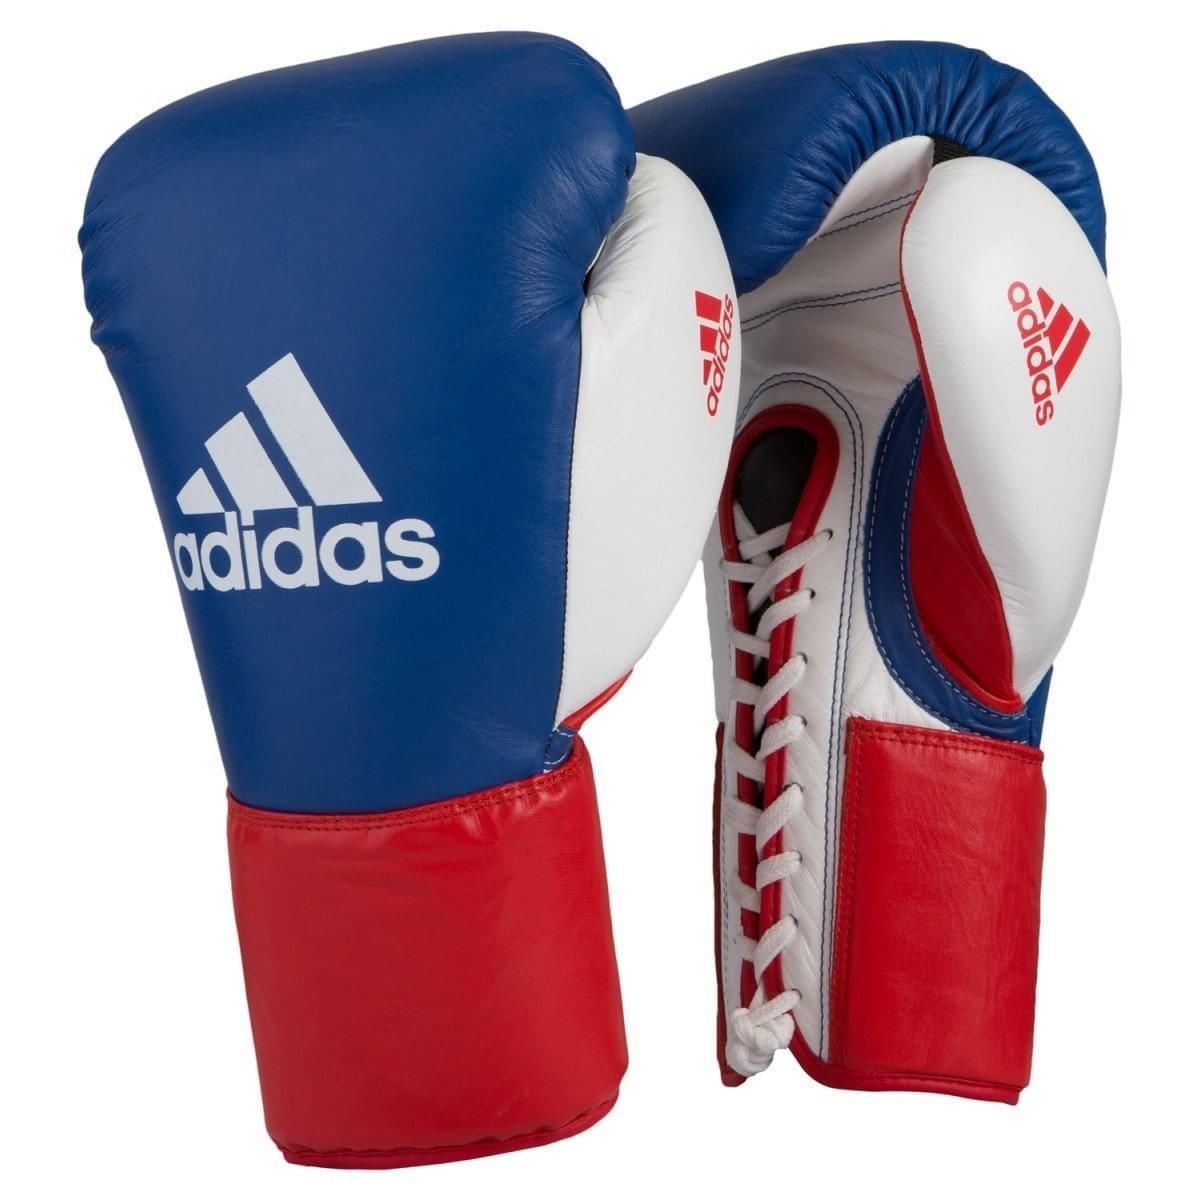 Pin By Boxing Fanatic Here On Boxing Fighting Gloves Boxing Equipment Boxing Training Gloves